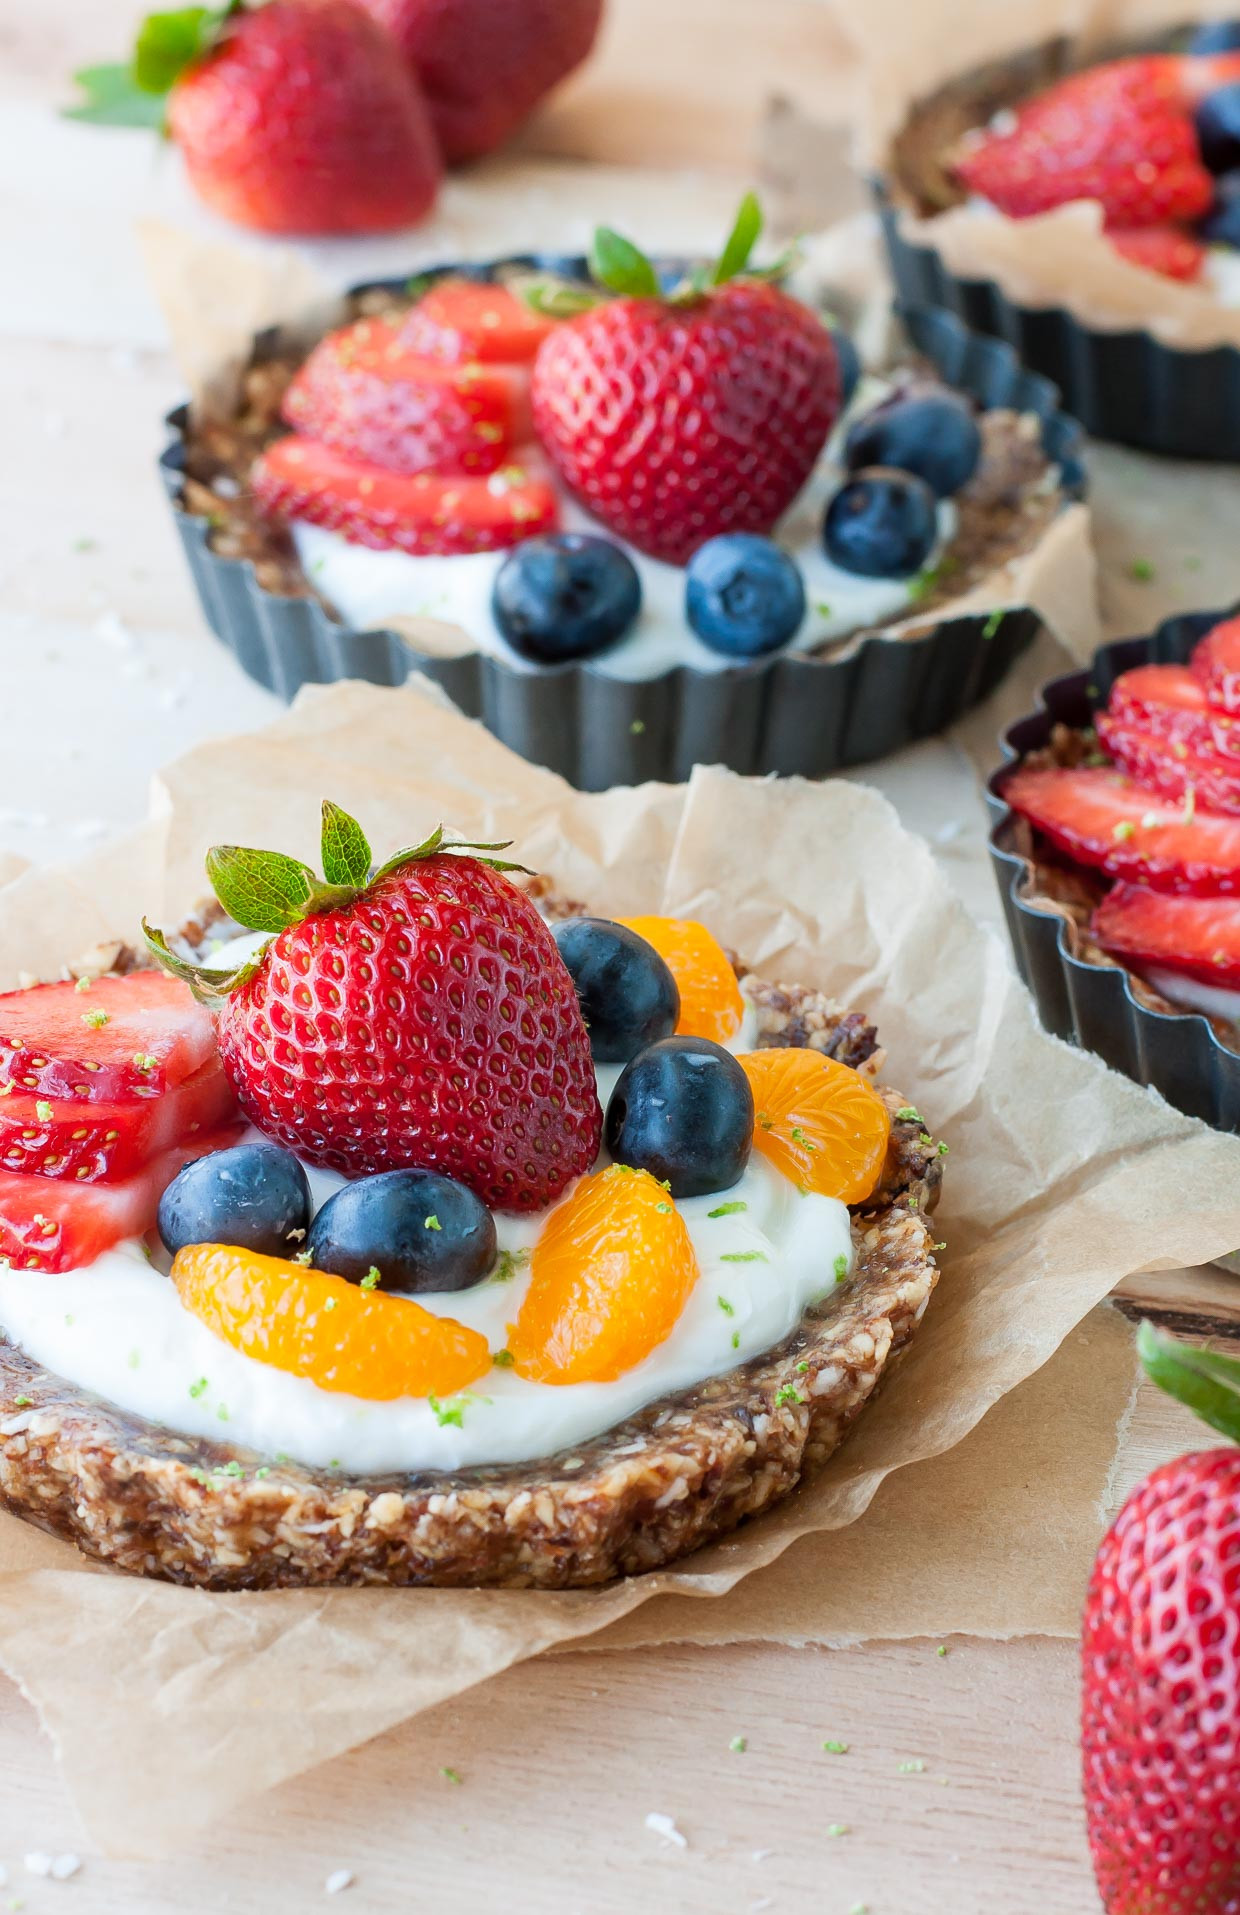 Easy Healthy Desserts No Bake  Healthy No Bake Coconut Lime Tarts with Fruit and Yogurt